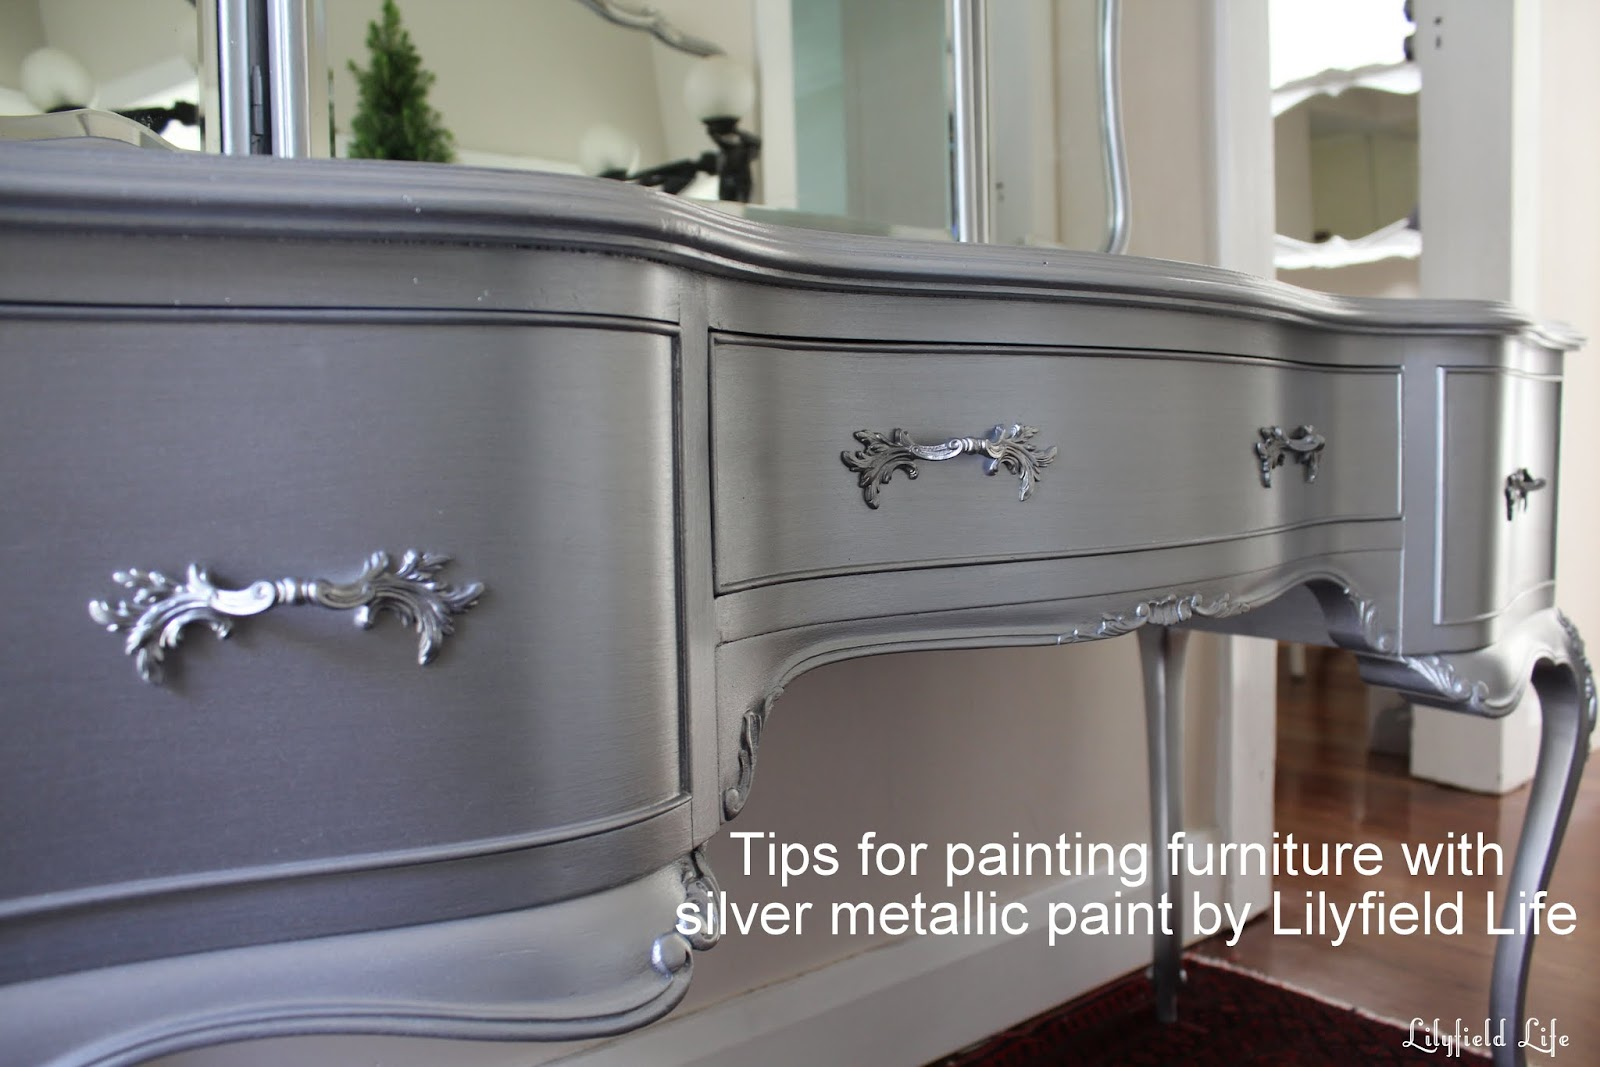 metallic paint for furniture Lilyfield Life: Tips on using Metallic Paint and a Silver Painted  metallic paint for furniture